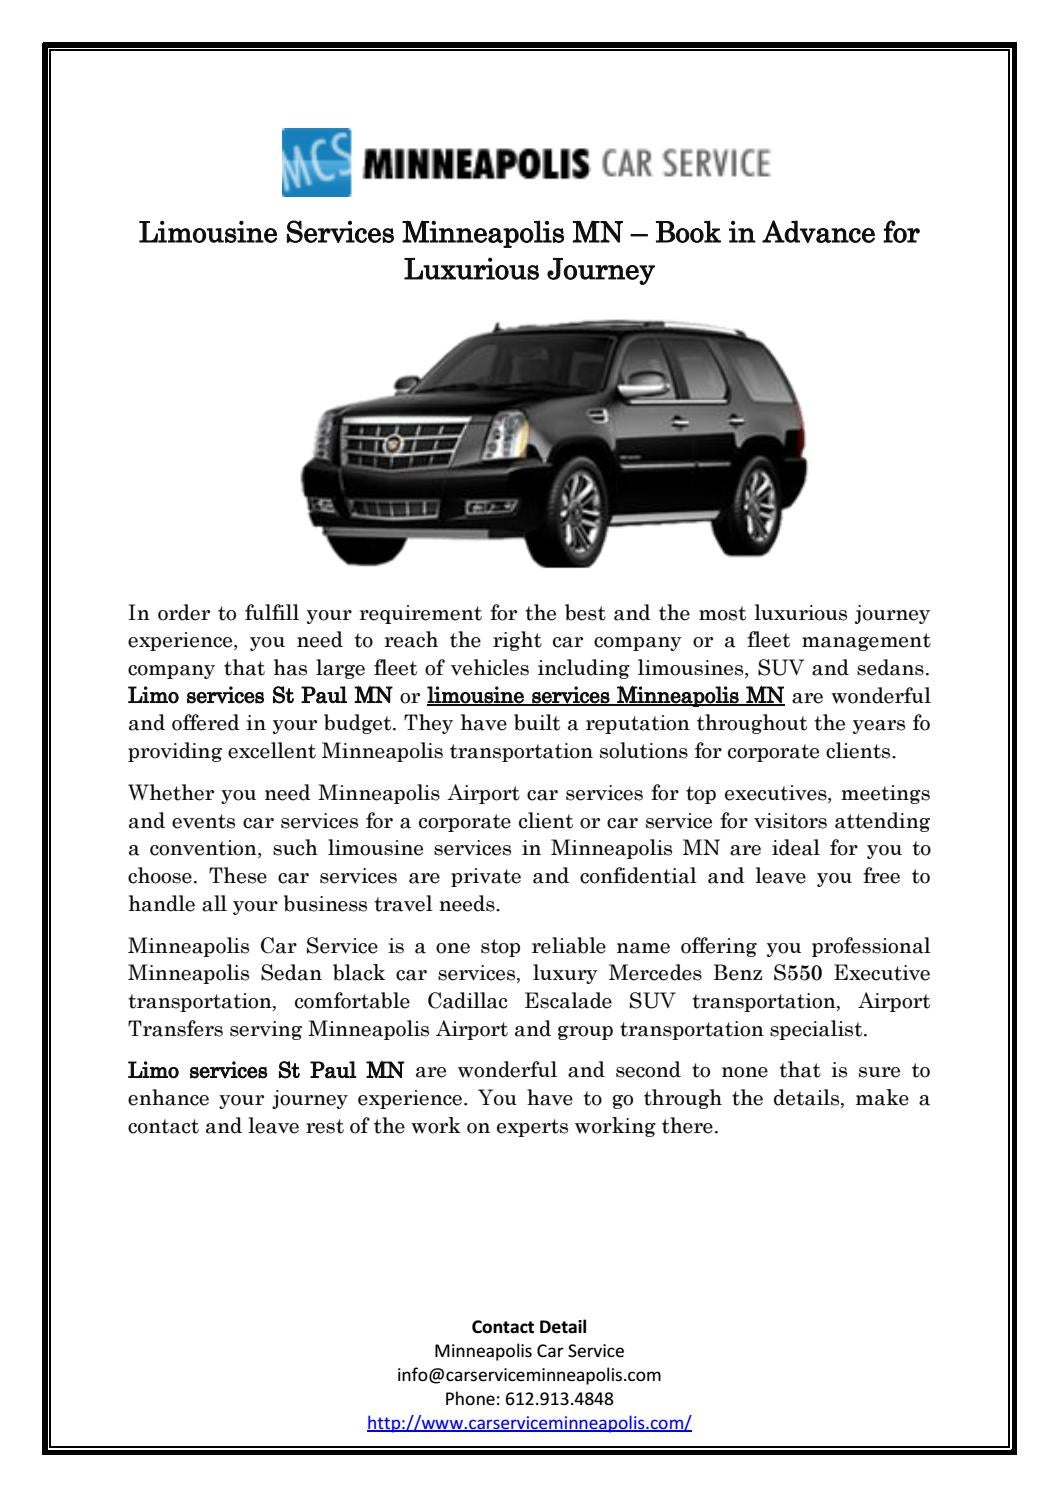 Limousine Services Minneapolis Mn Book In Advance For Luxurious